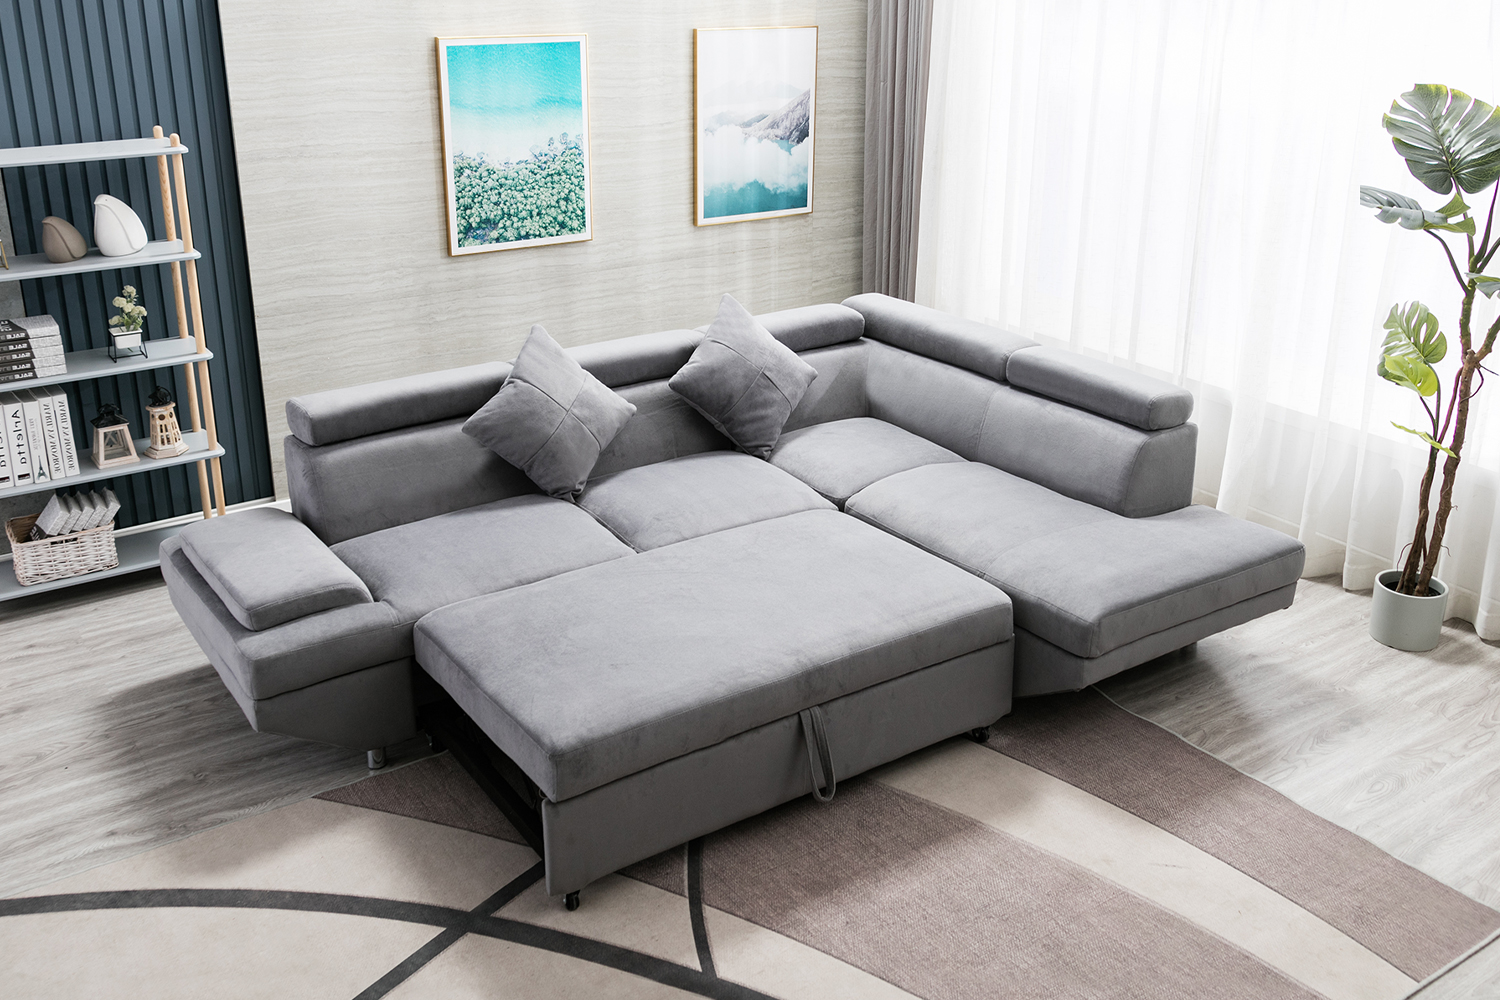 sleeper sofa bed sectional sofa futon sofa bed sofas for living room furniture set modern sofa set corner sofa contemporary upholstered fabric